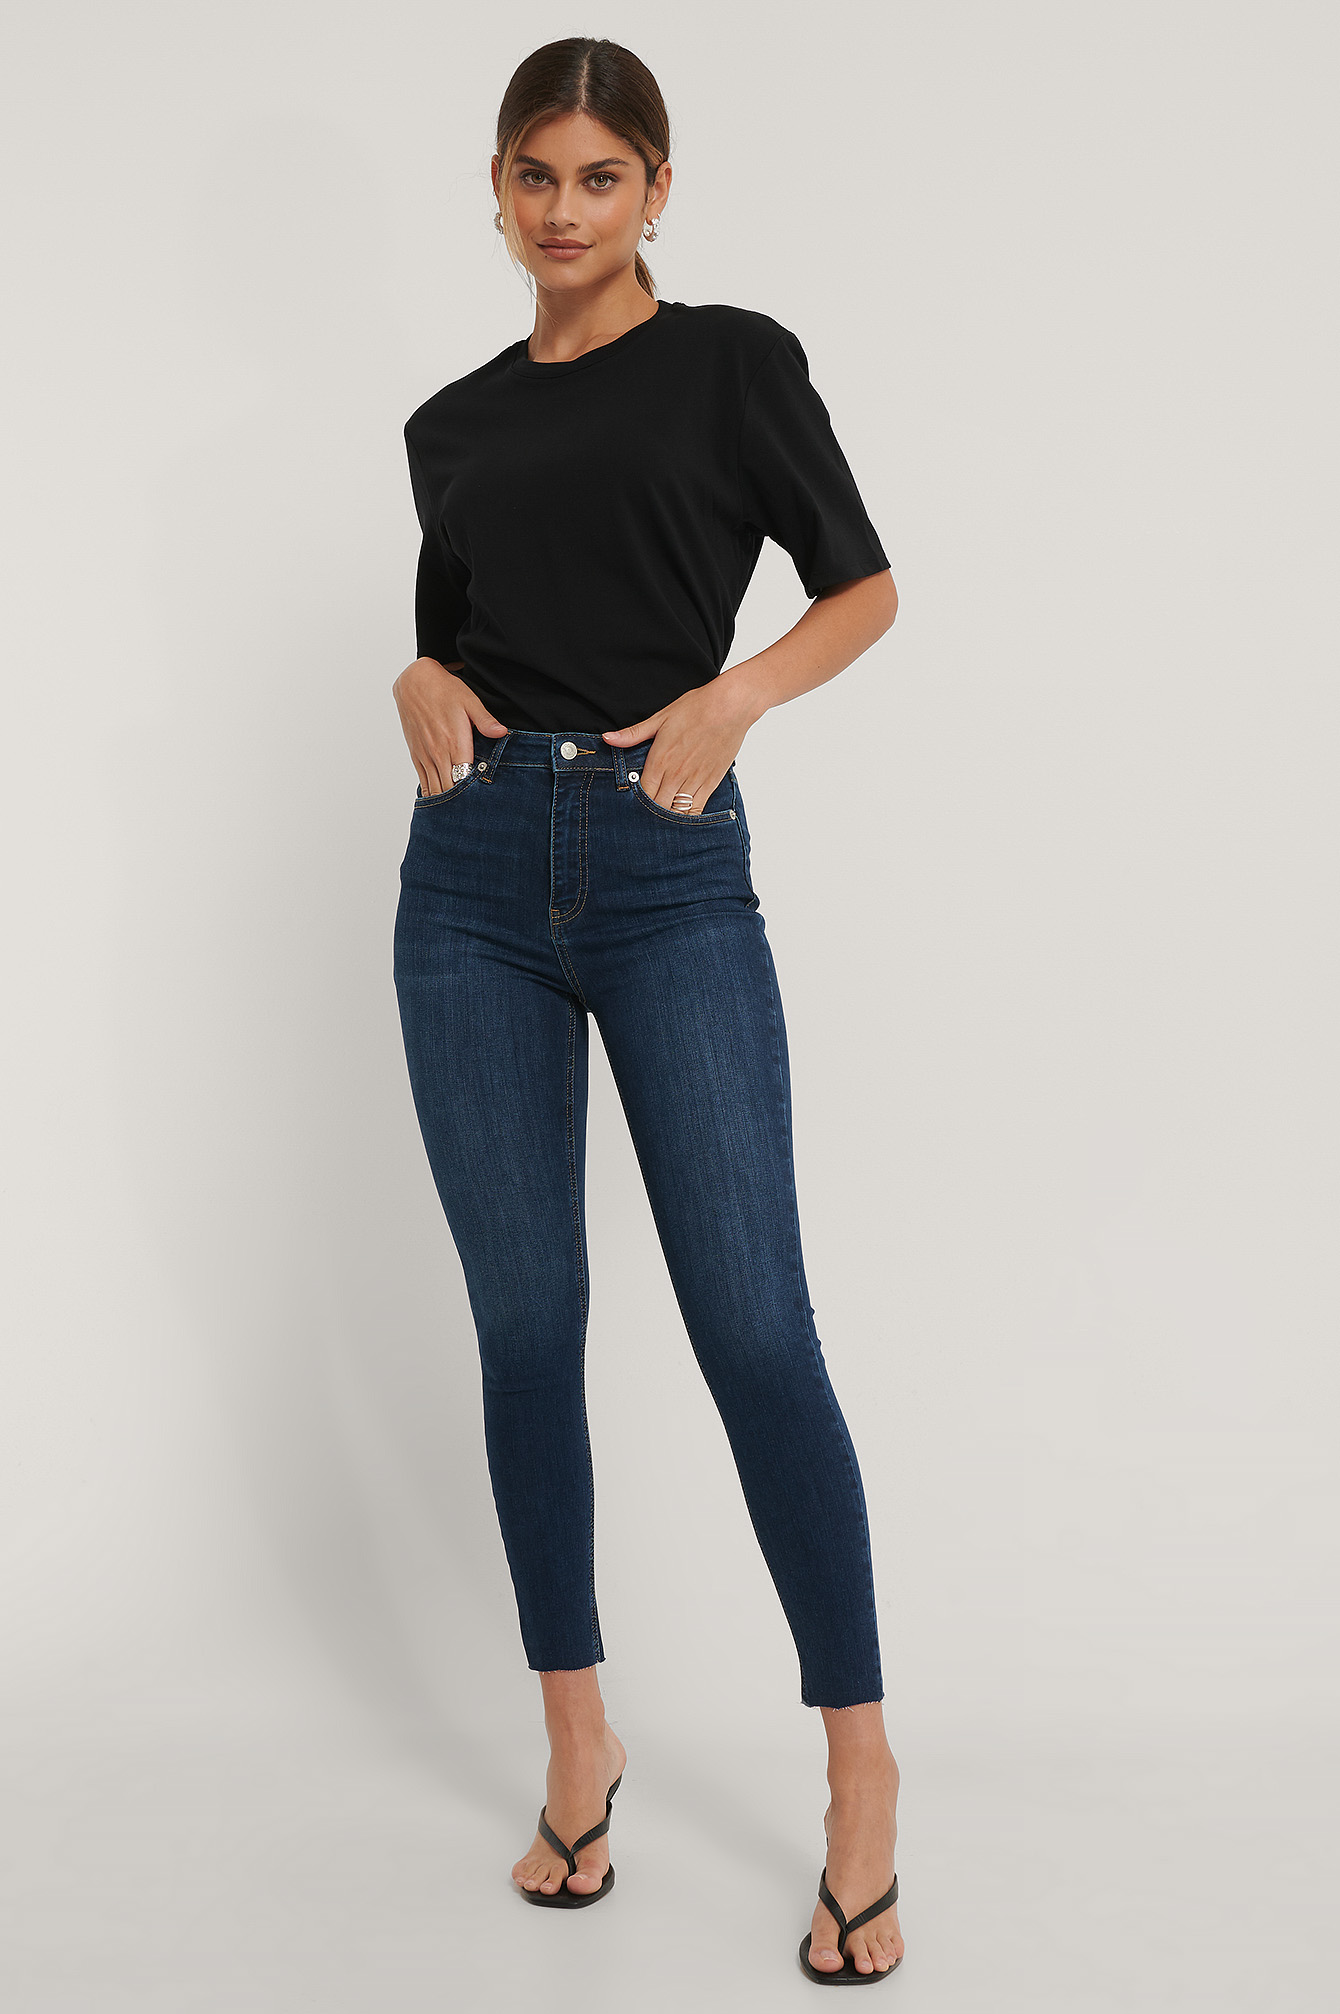 Dark Blue Organic Skinny High Waist Raw Hem Jeans